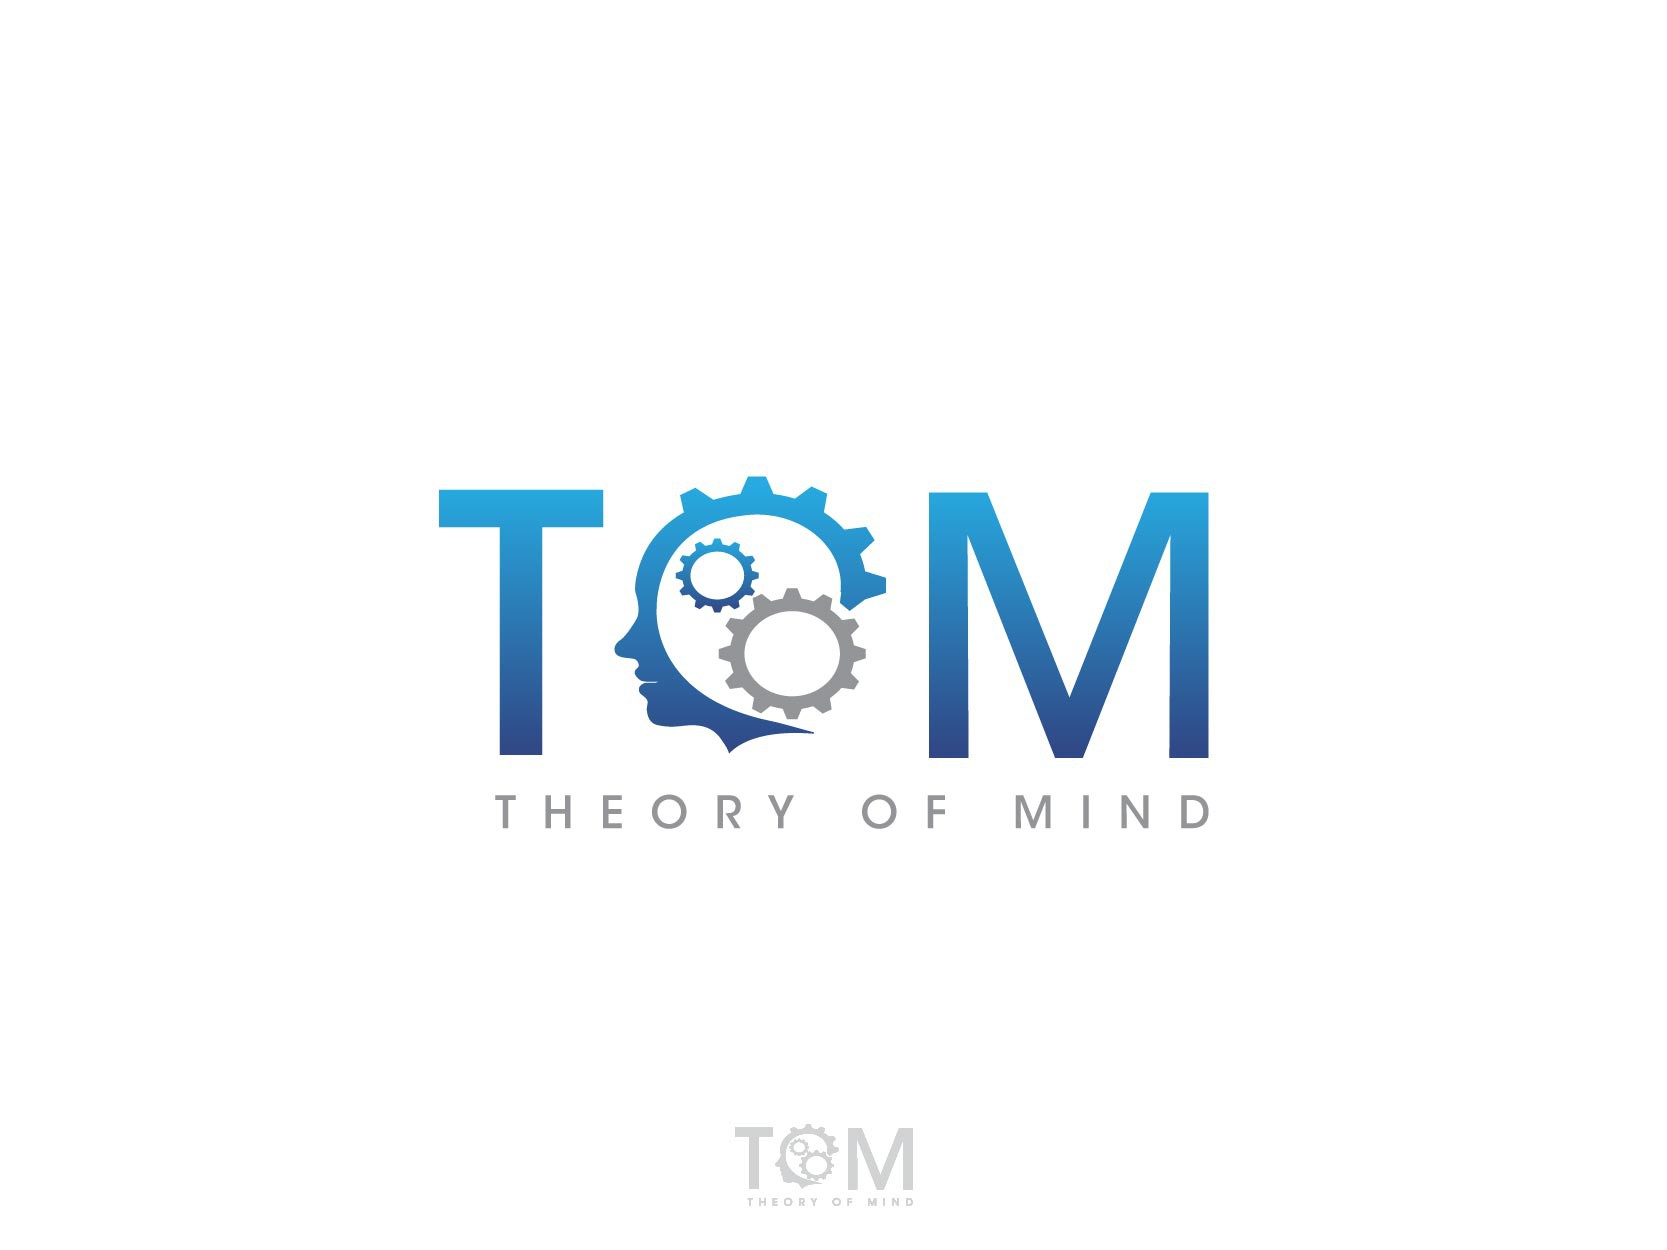 New logo and business card wanted for Theory of Mind is company name, ToM is our abbreviation